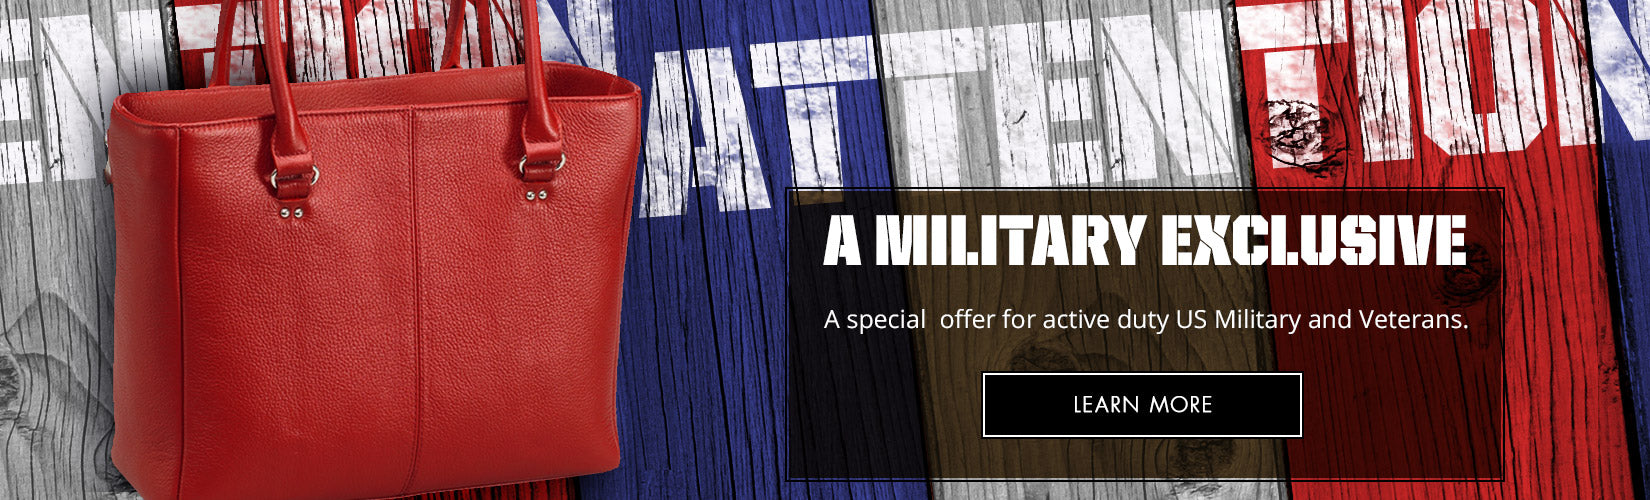 Special Military Offer